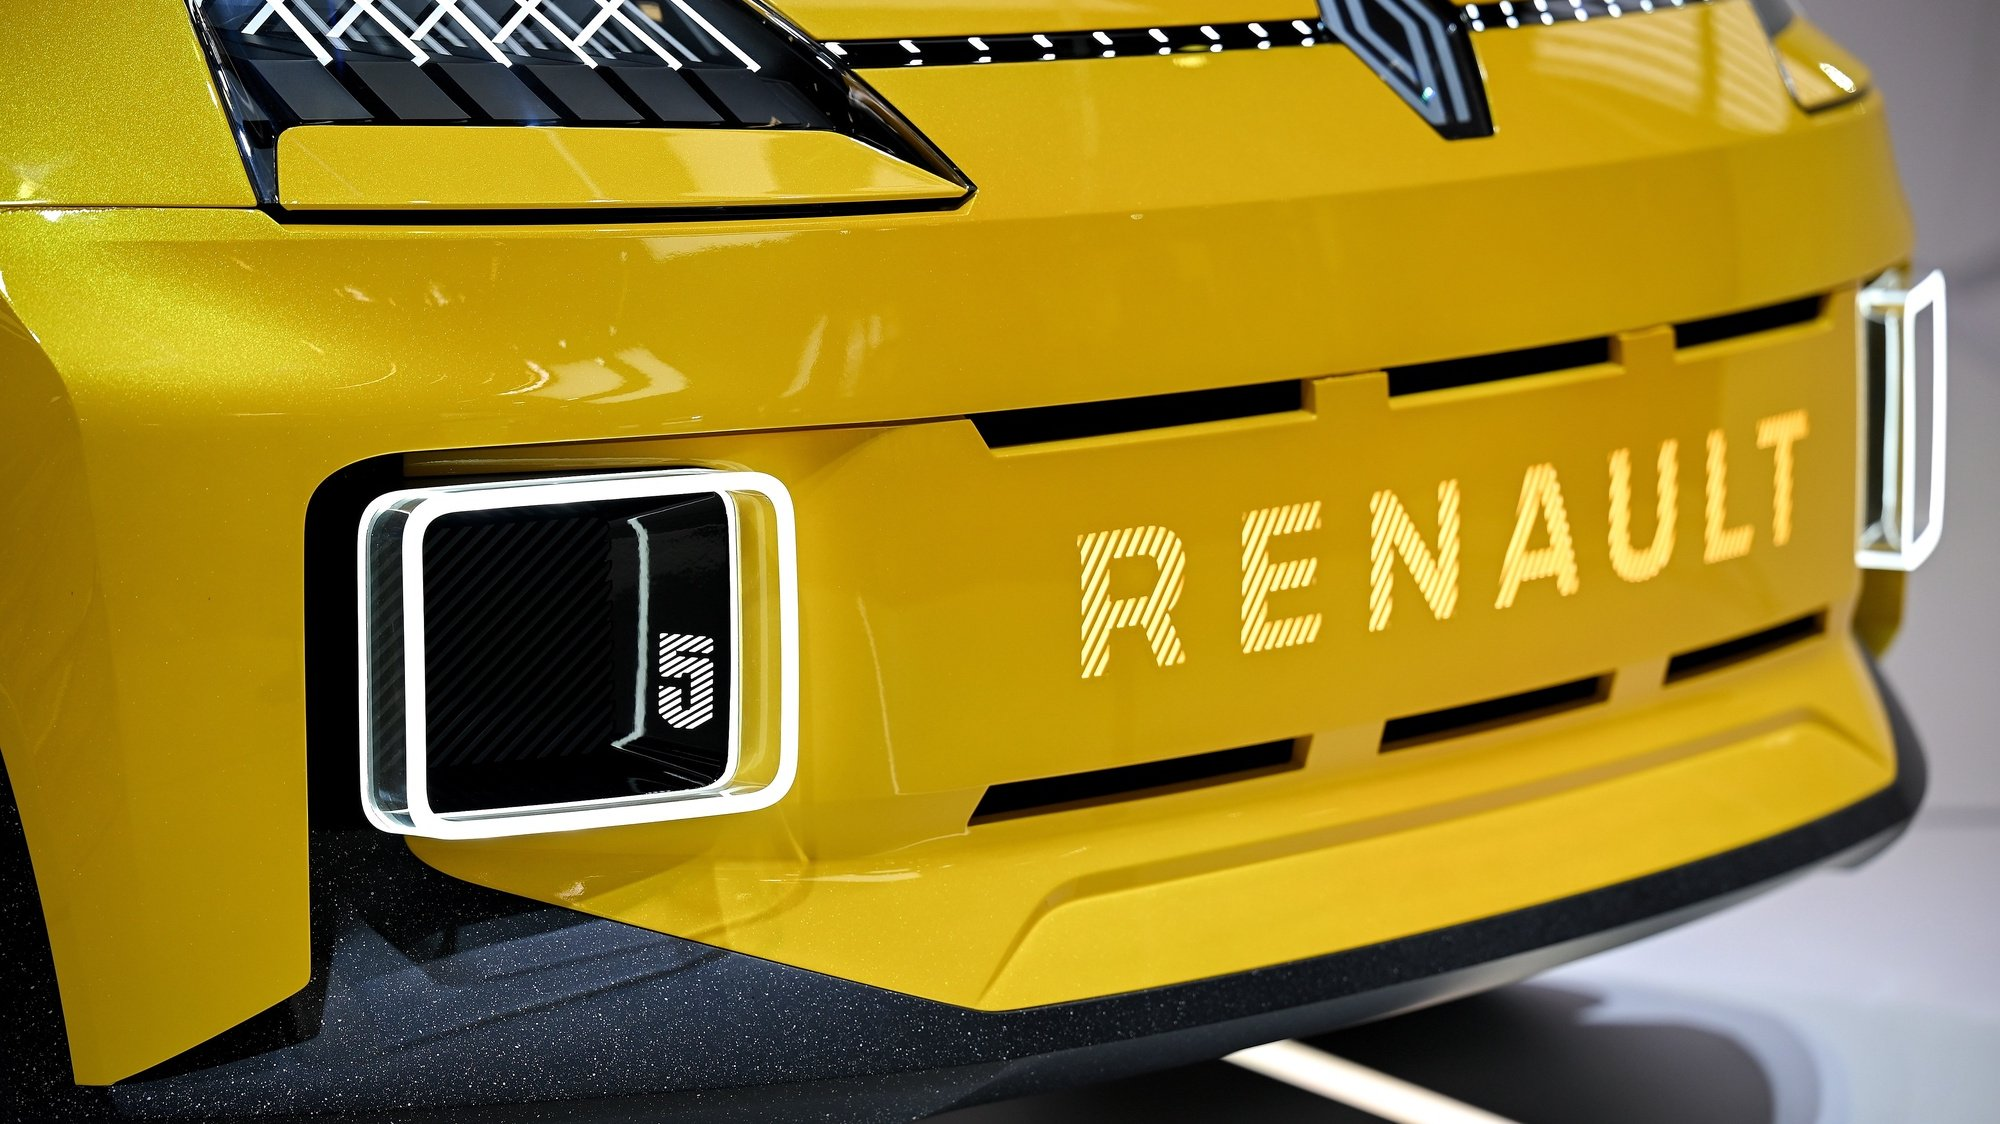 epa09453477 The All New Renault 5 Electric on display at the International Motor Show IAA in Munich, Germany, 07 September 2021. The 2021 International Motor Show Germany IAA 2021, which this year promotes itself under the motto 'What will move us next', takes place in Munich from 07 to 12 September 2021. The IAA Mobility 2021 will also feature numerous world premieres and has a special focus on electric mobility and digitization.  EPA/SASCHA STEINBACH